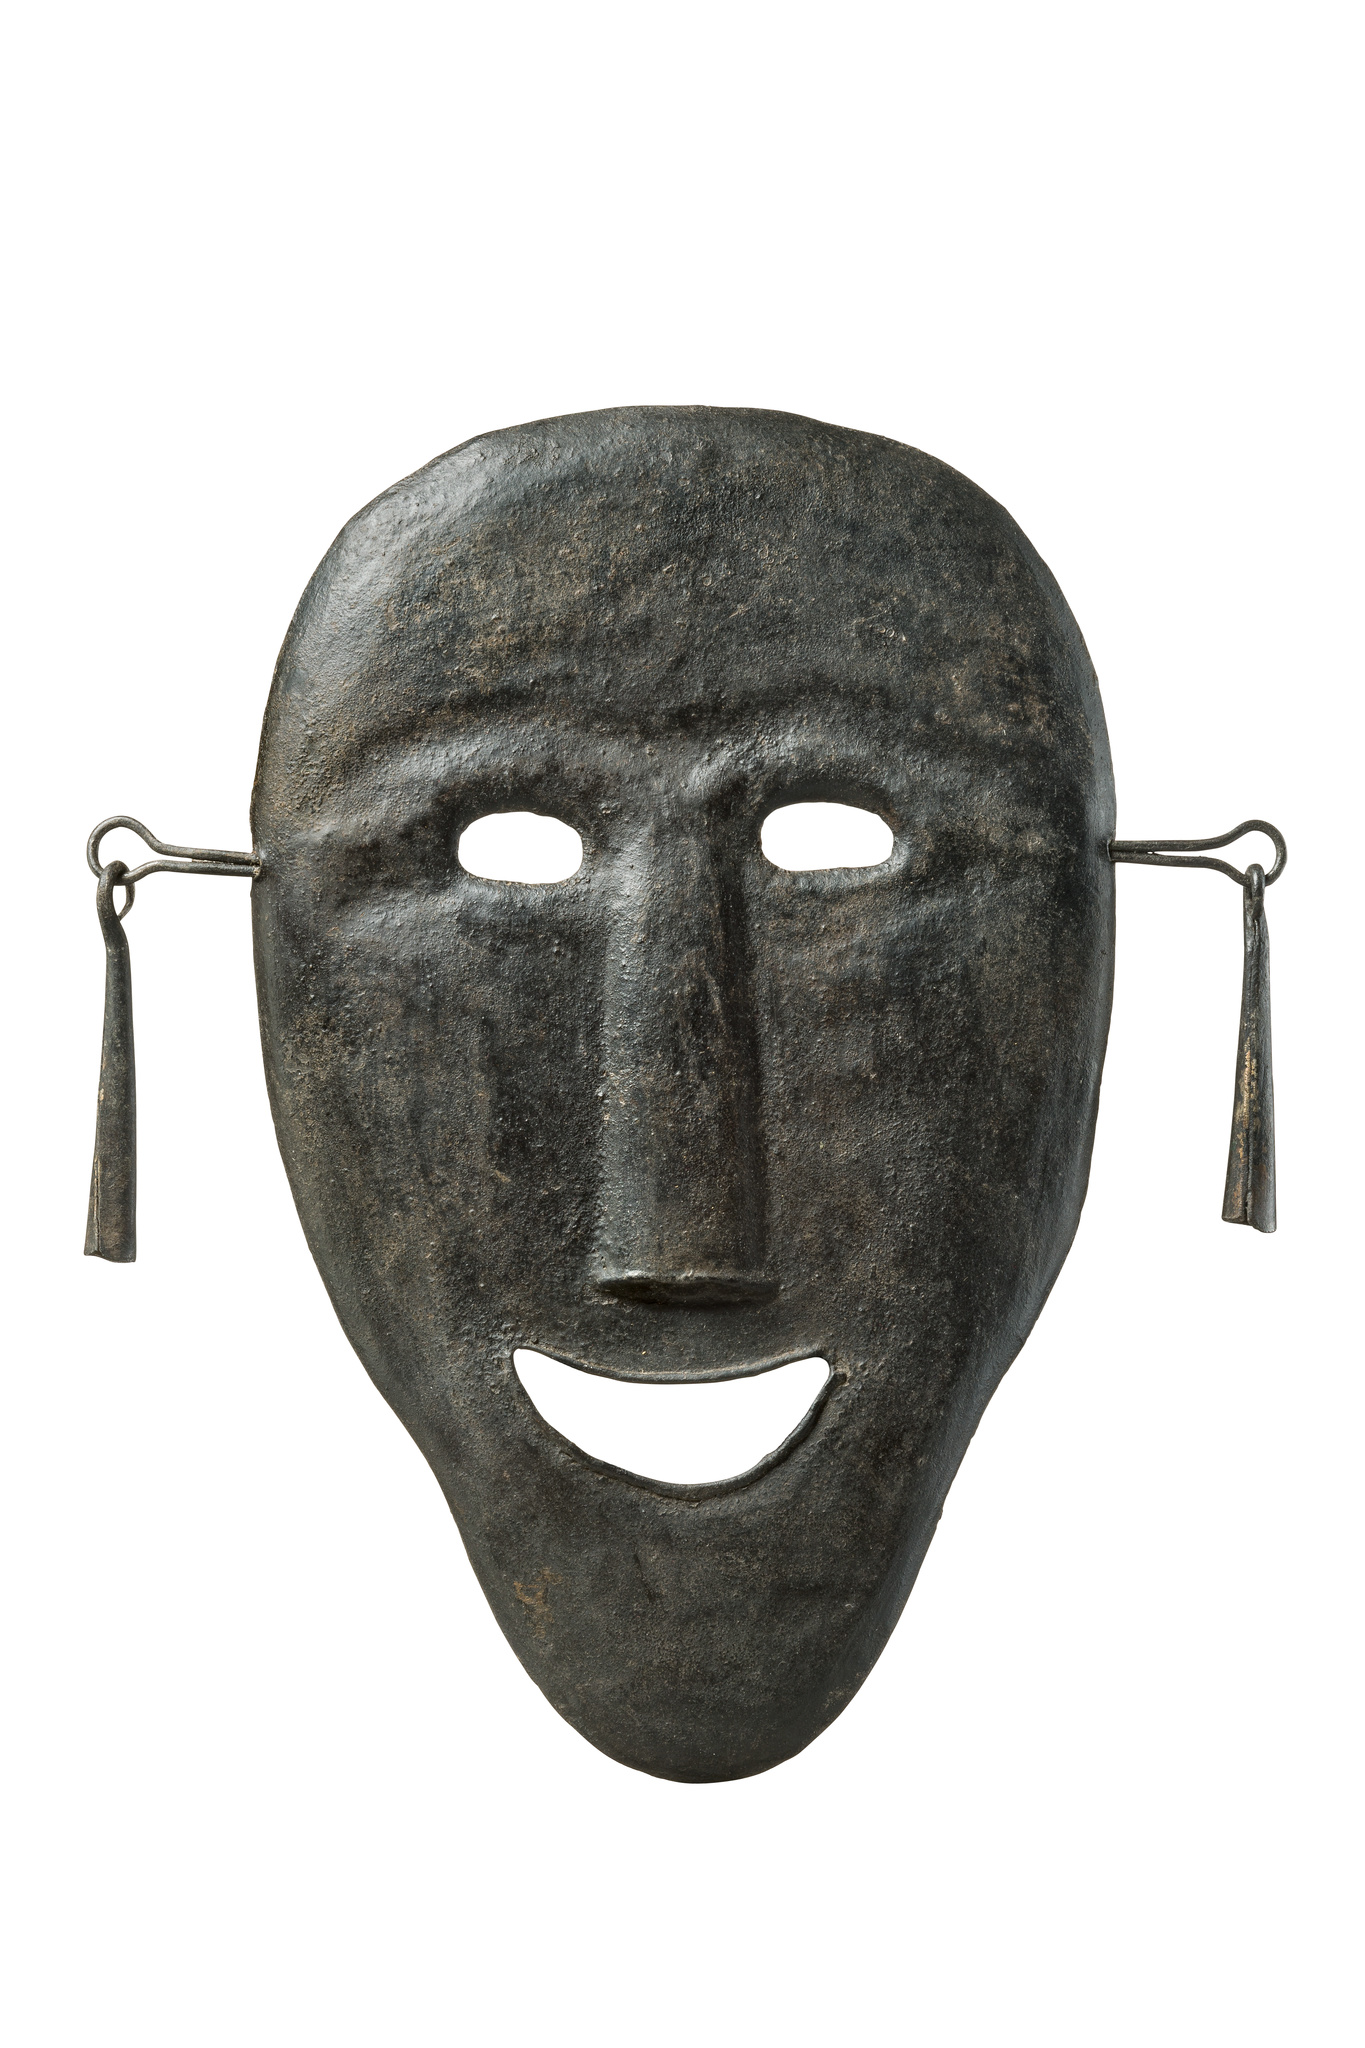 Shaman's mask with ear ornament